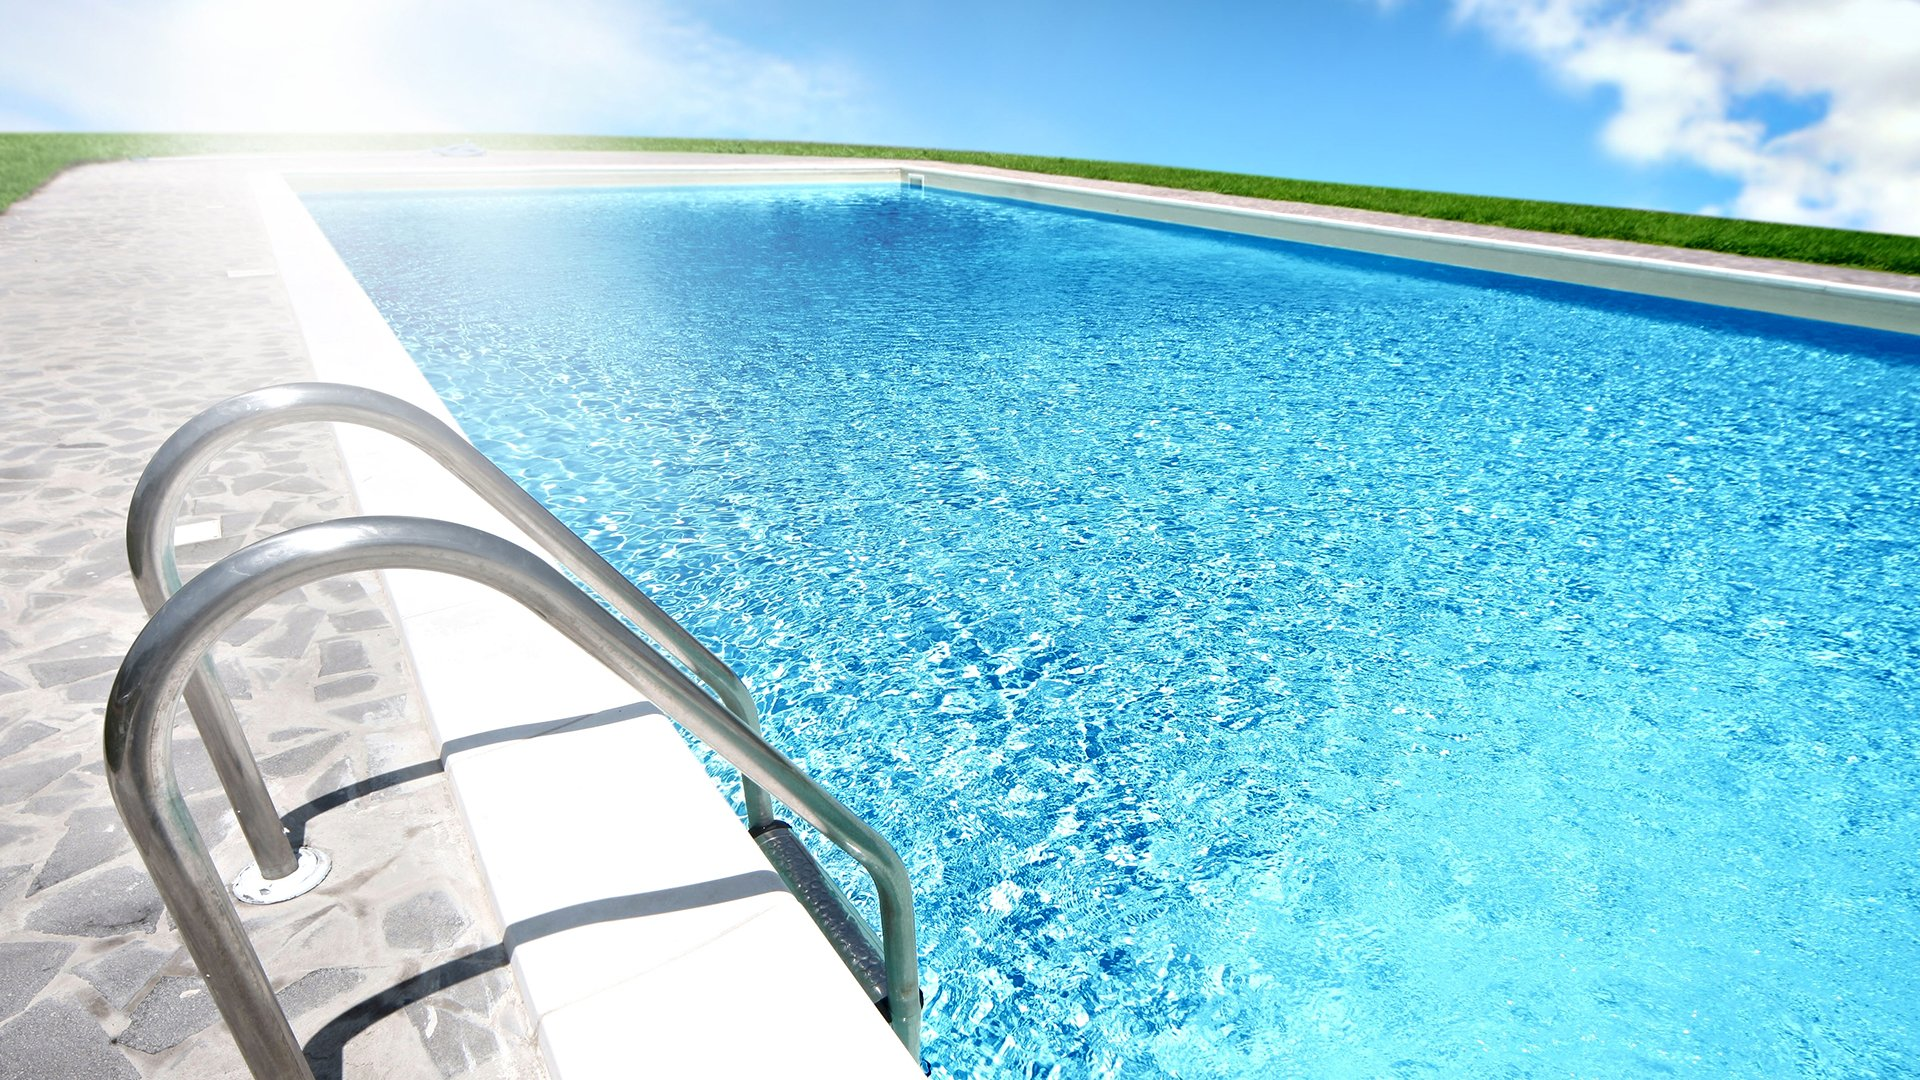 Swimming Pool Water Design Wallpaper 1920x1080 419828 Wallpaperup